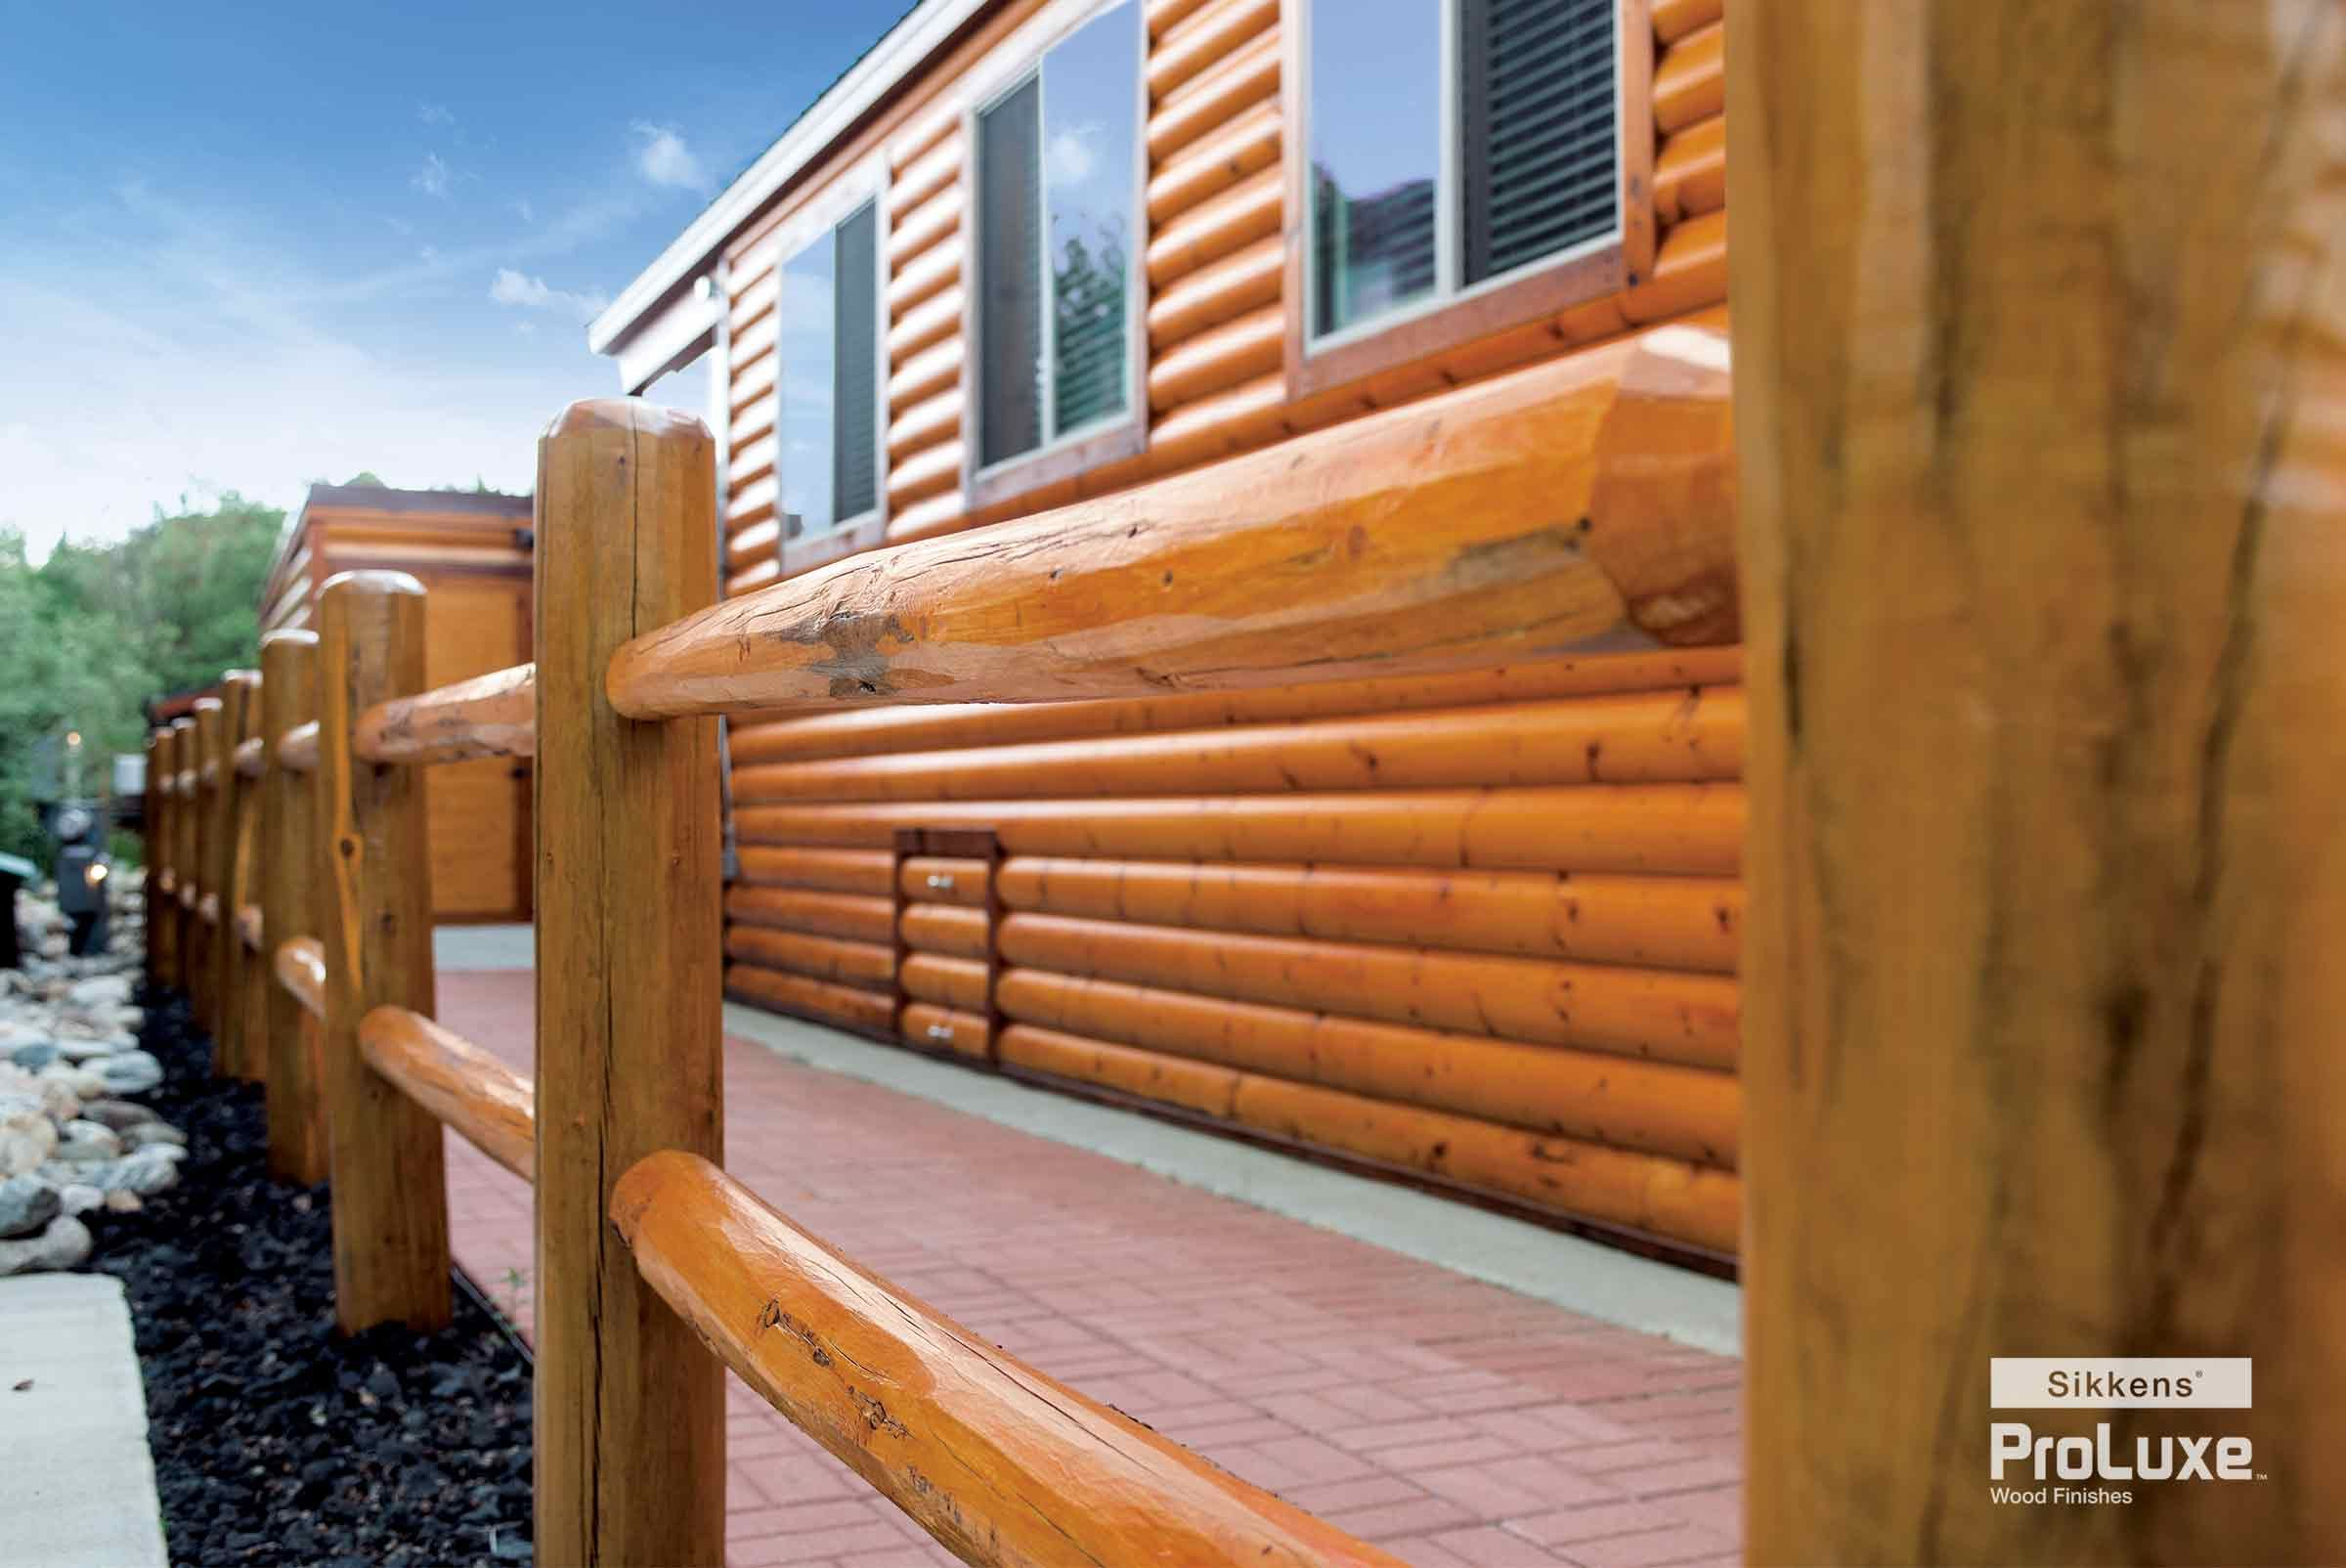 Log cabin stain colors - Sikkens Proluxe Cetol Log Siding In Natural Brings Out The Inherent Radiance